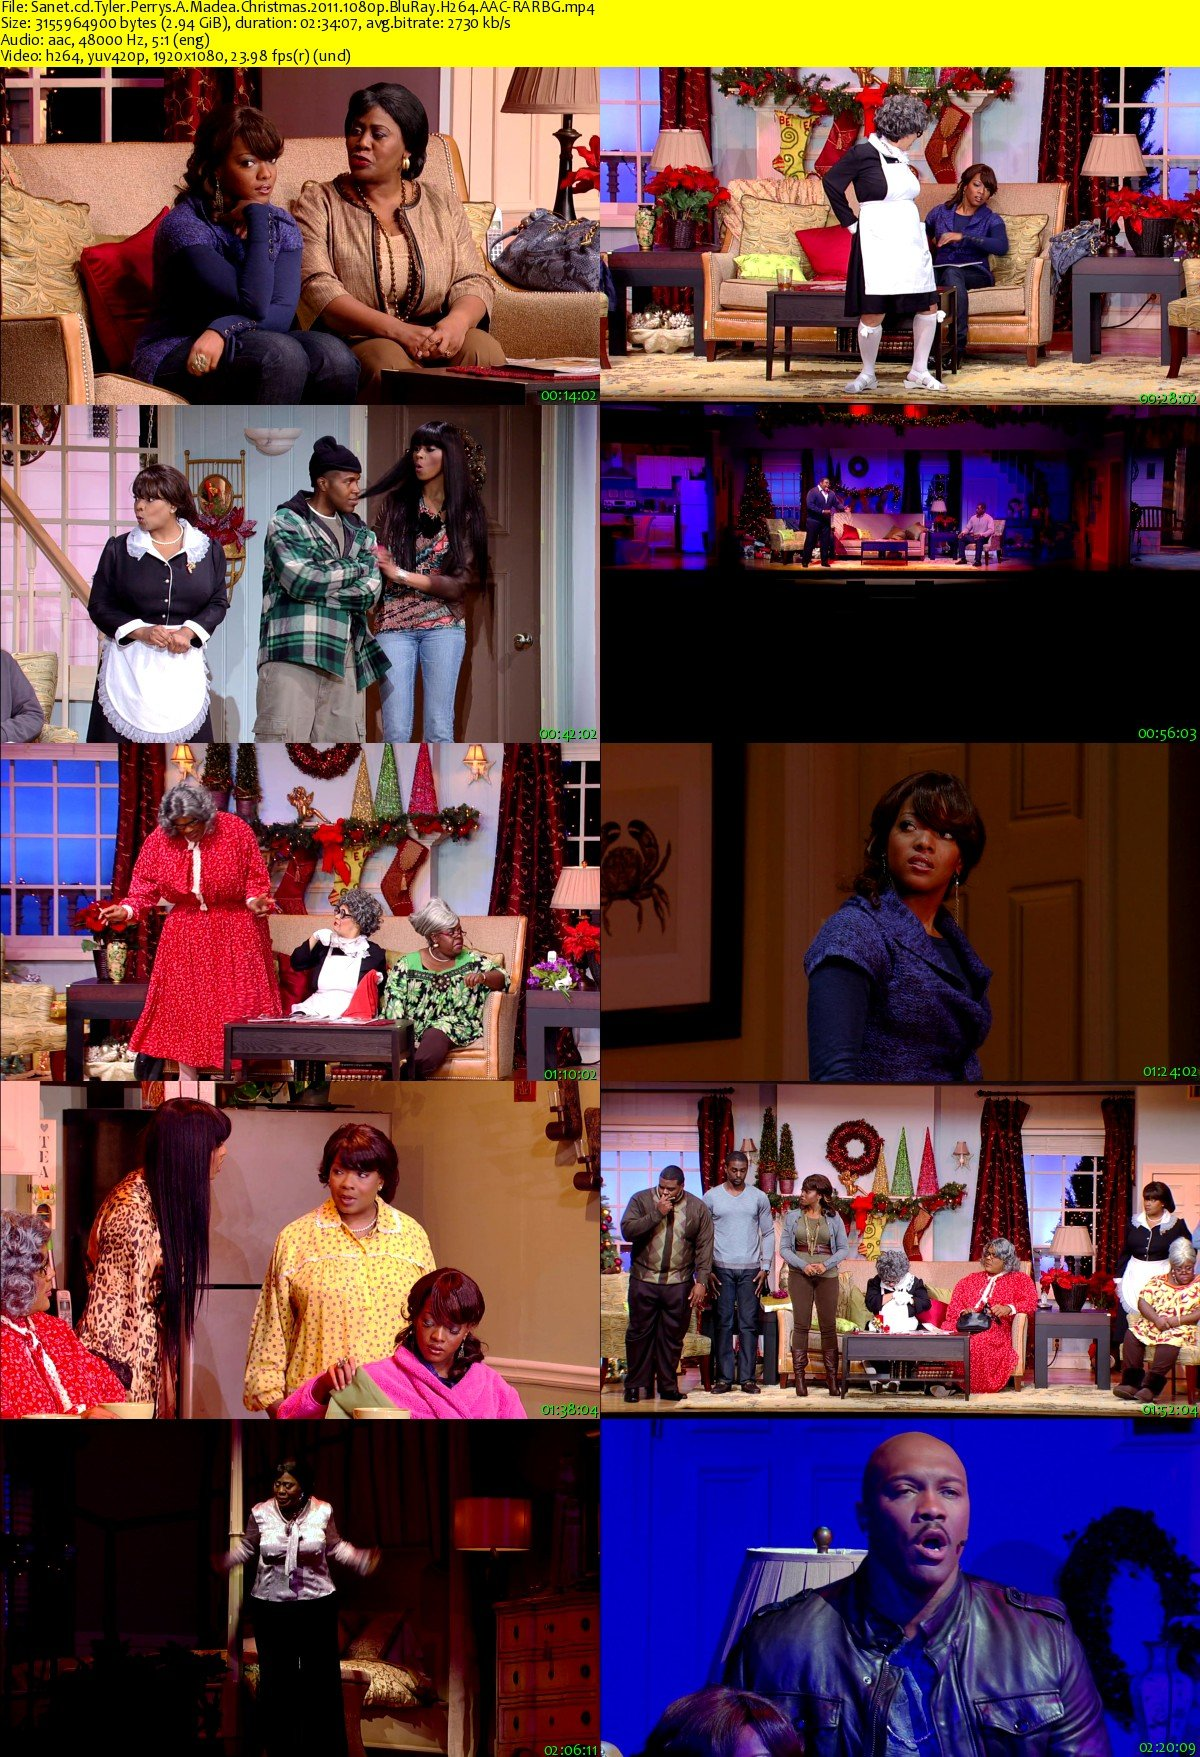 Madea Christmas Full Play.Download Tyler Perrys A Madea Christmas 2011 1080p Bluray